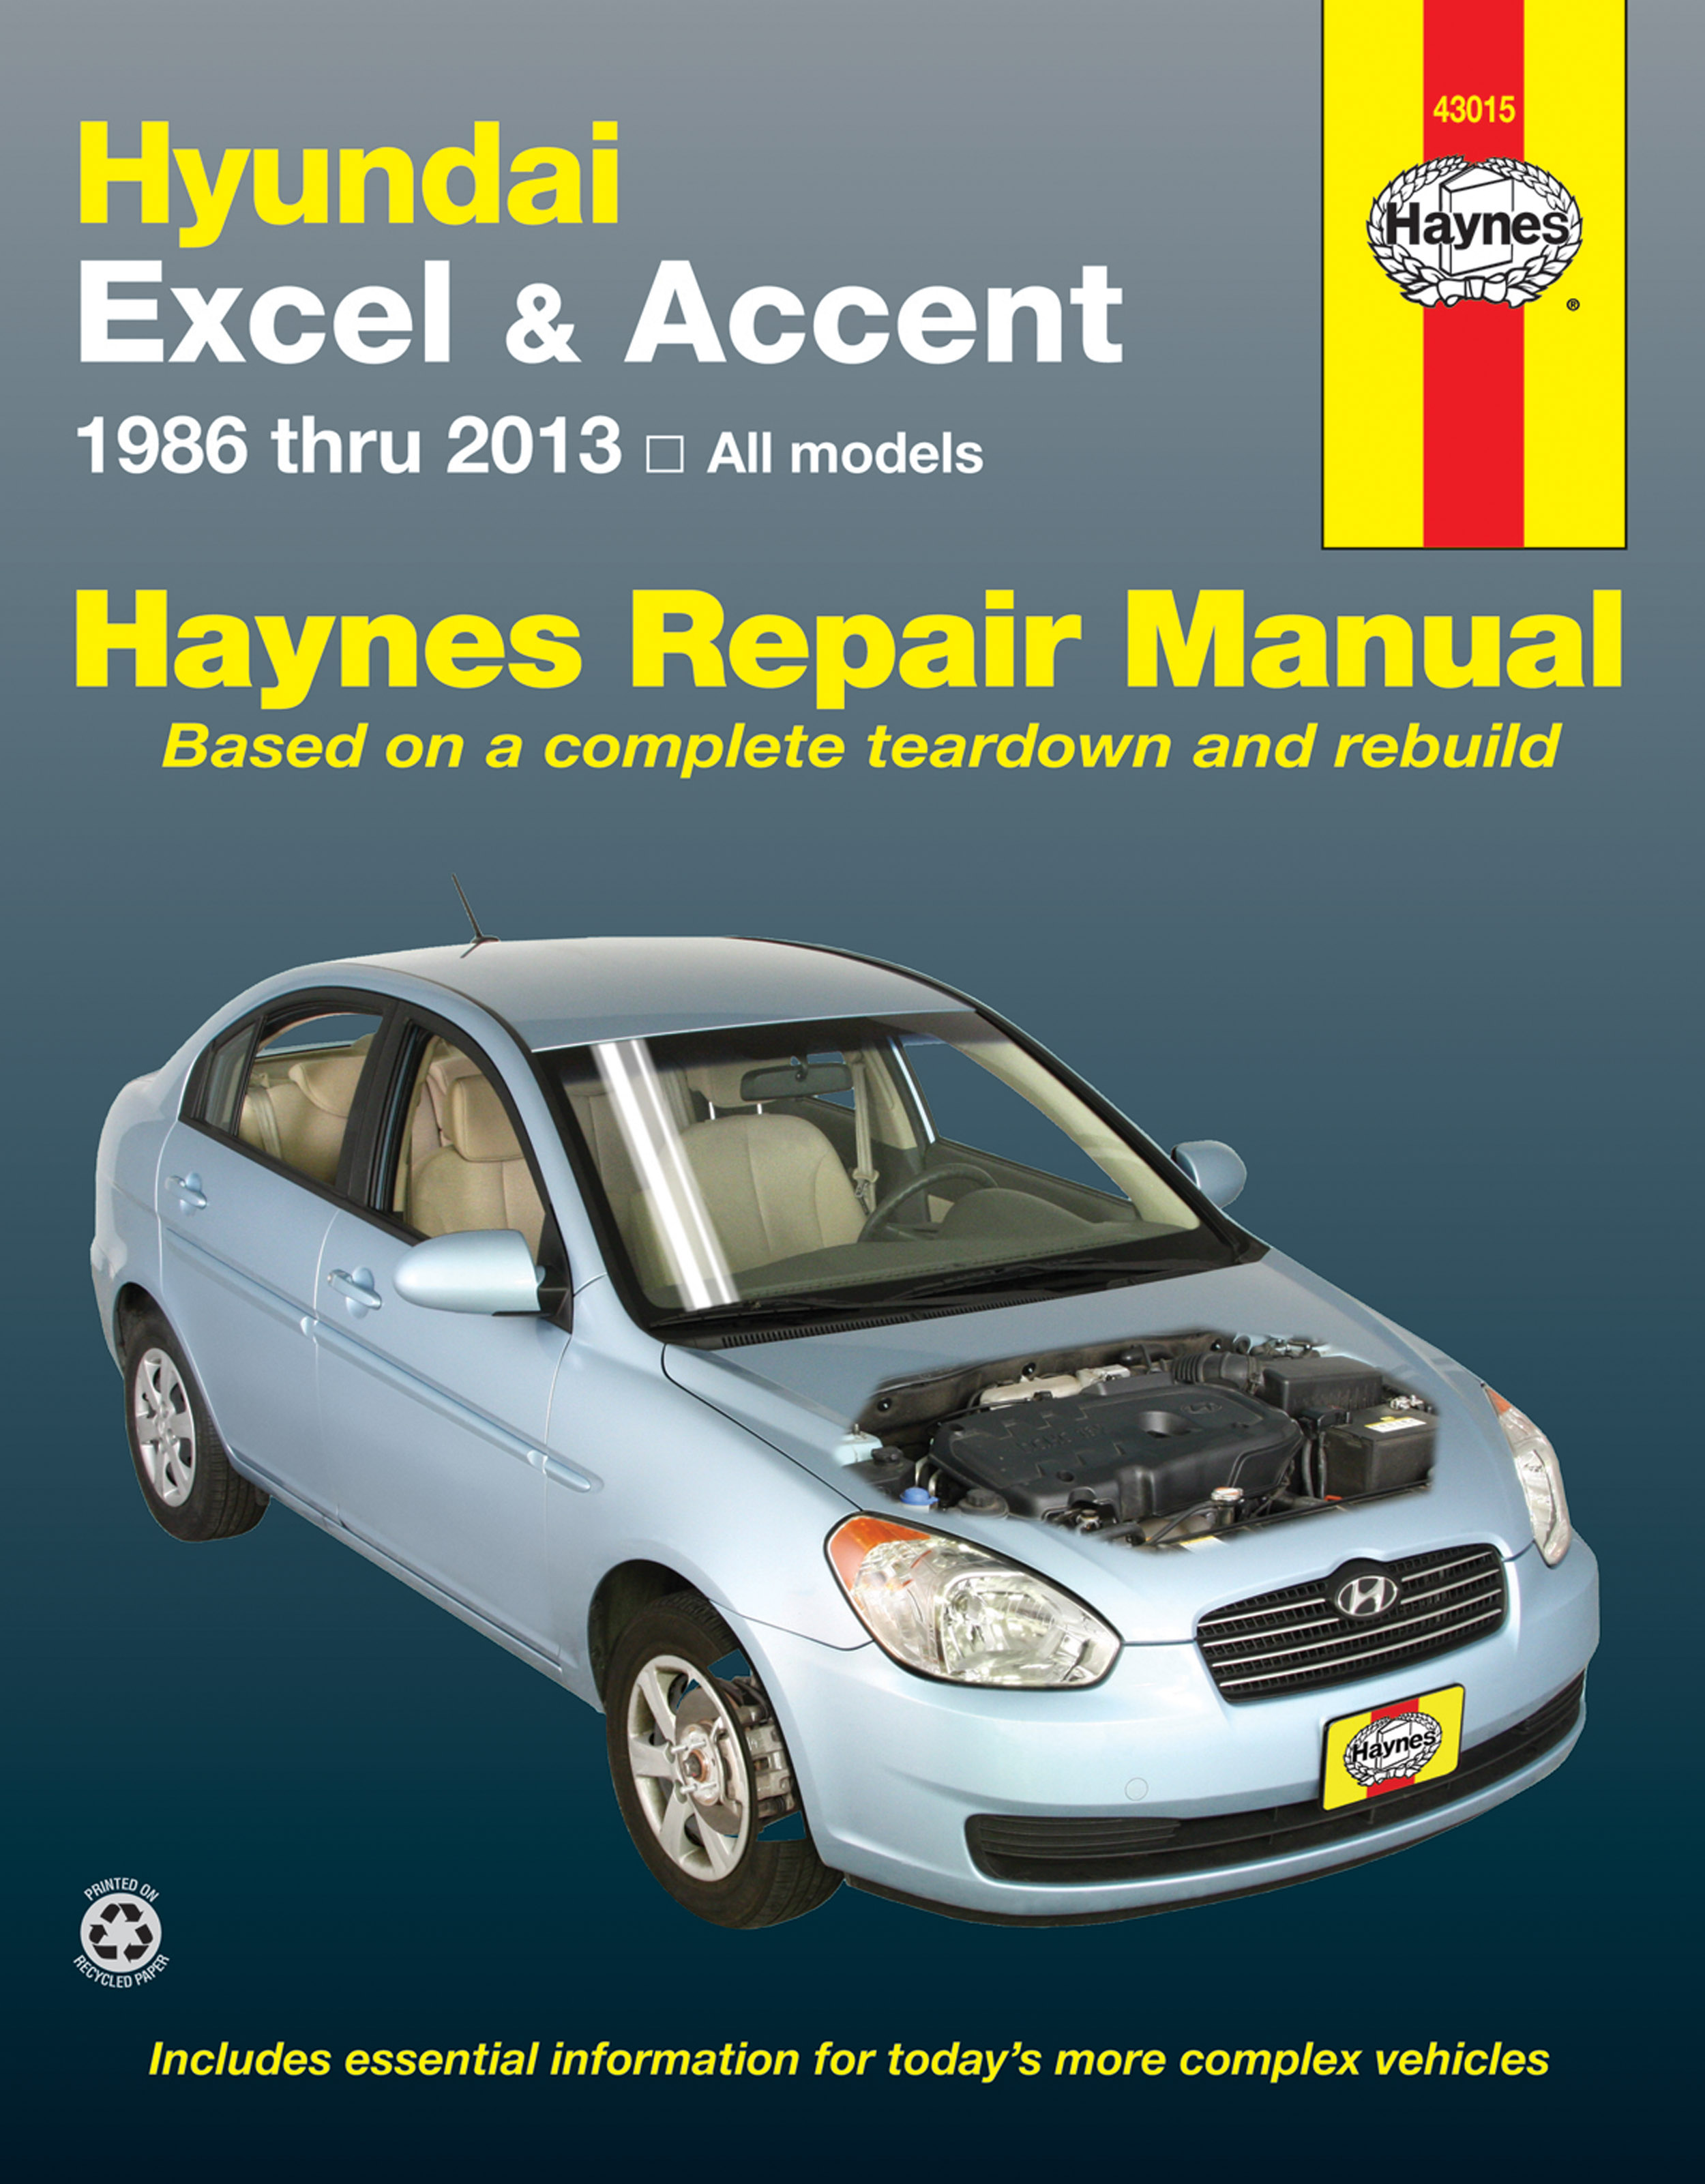 Hyundai accent 2001 service repair manual free download programs.